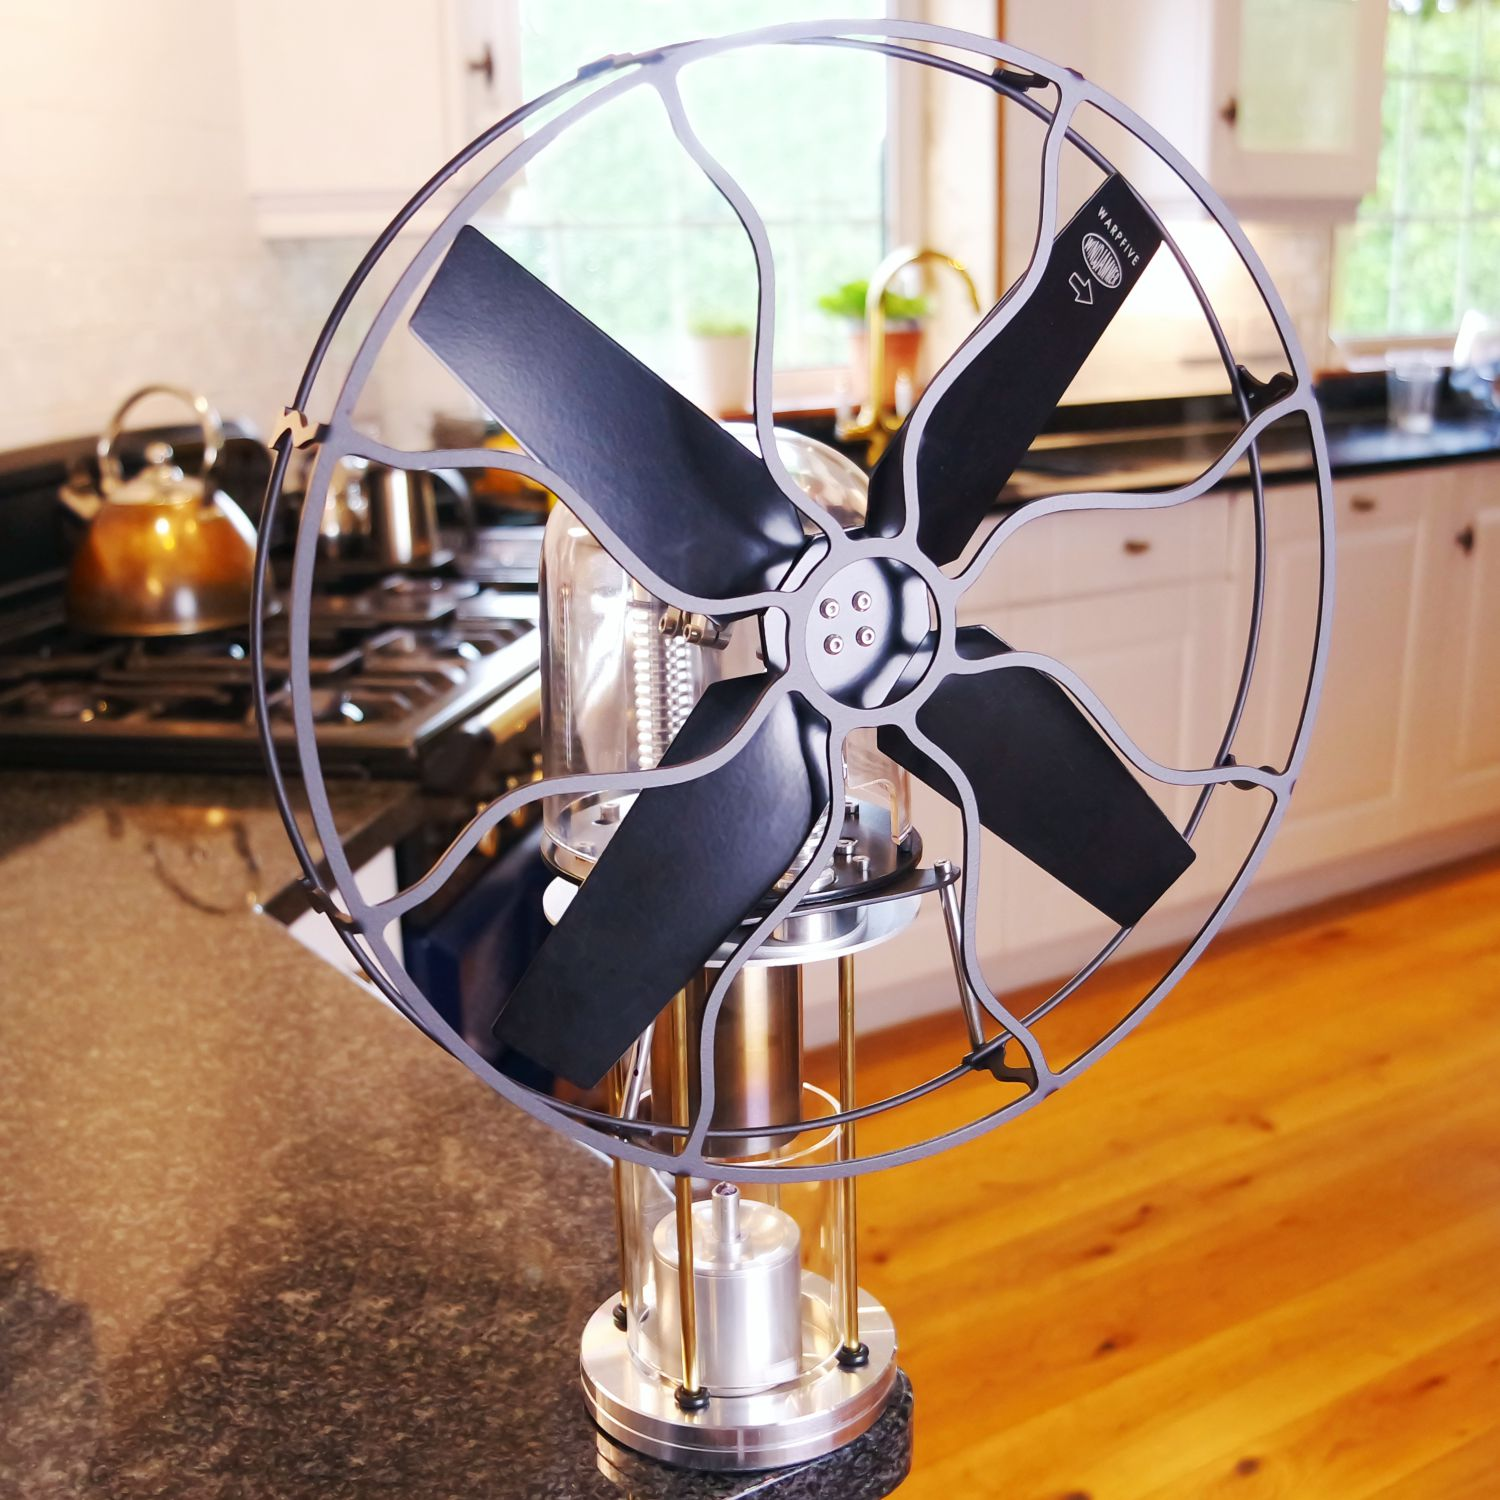 Multi-purpose table fan runs on alcohol or Methylated Spirits - spreads warm air from any heat source or cool air